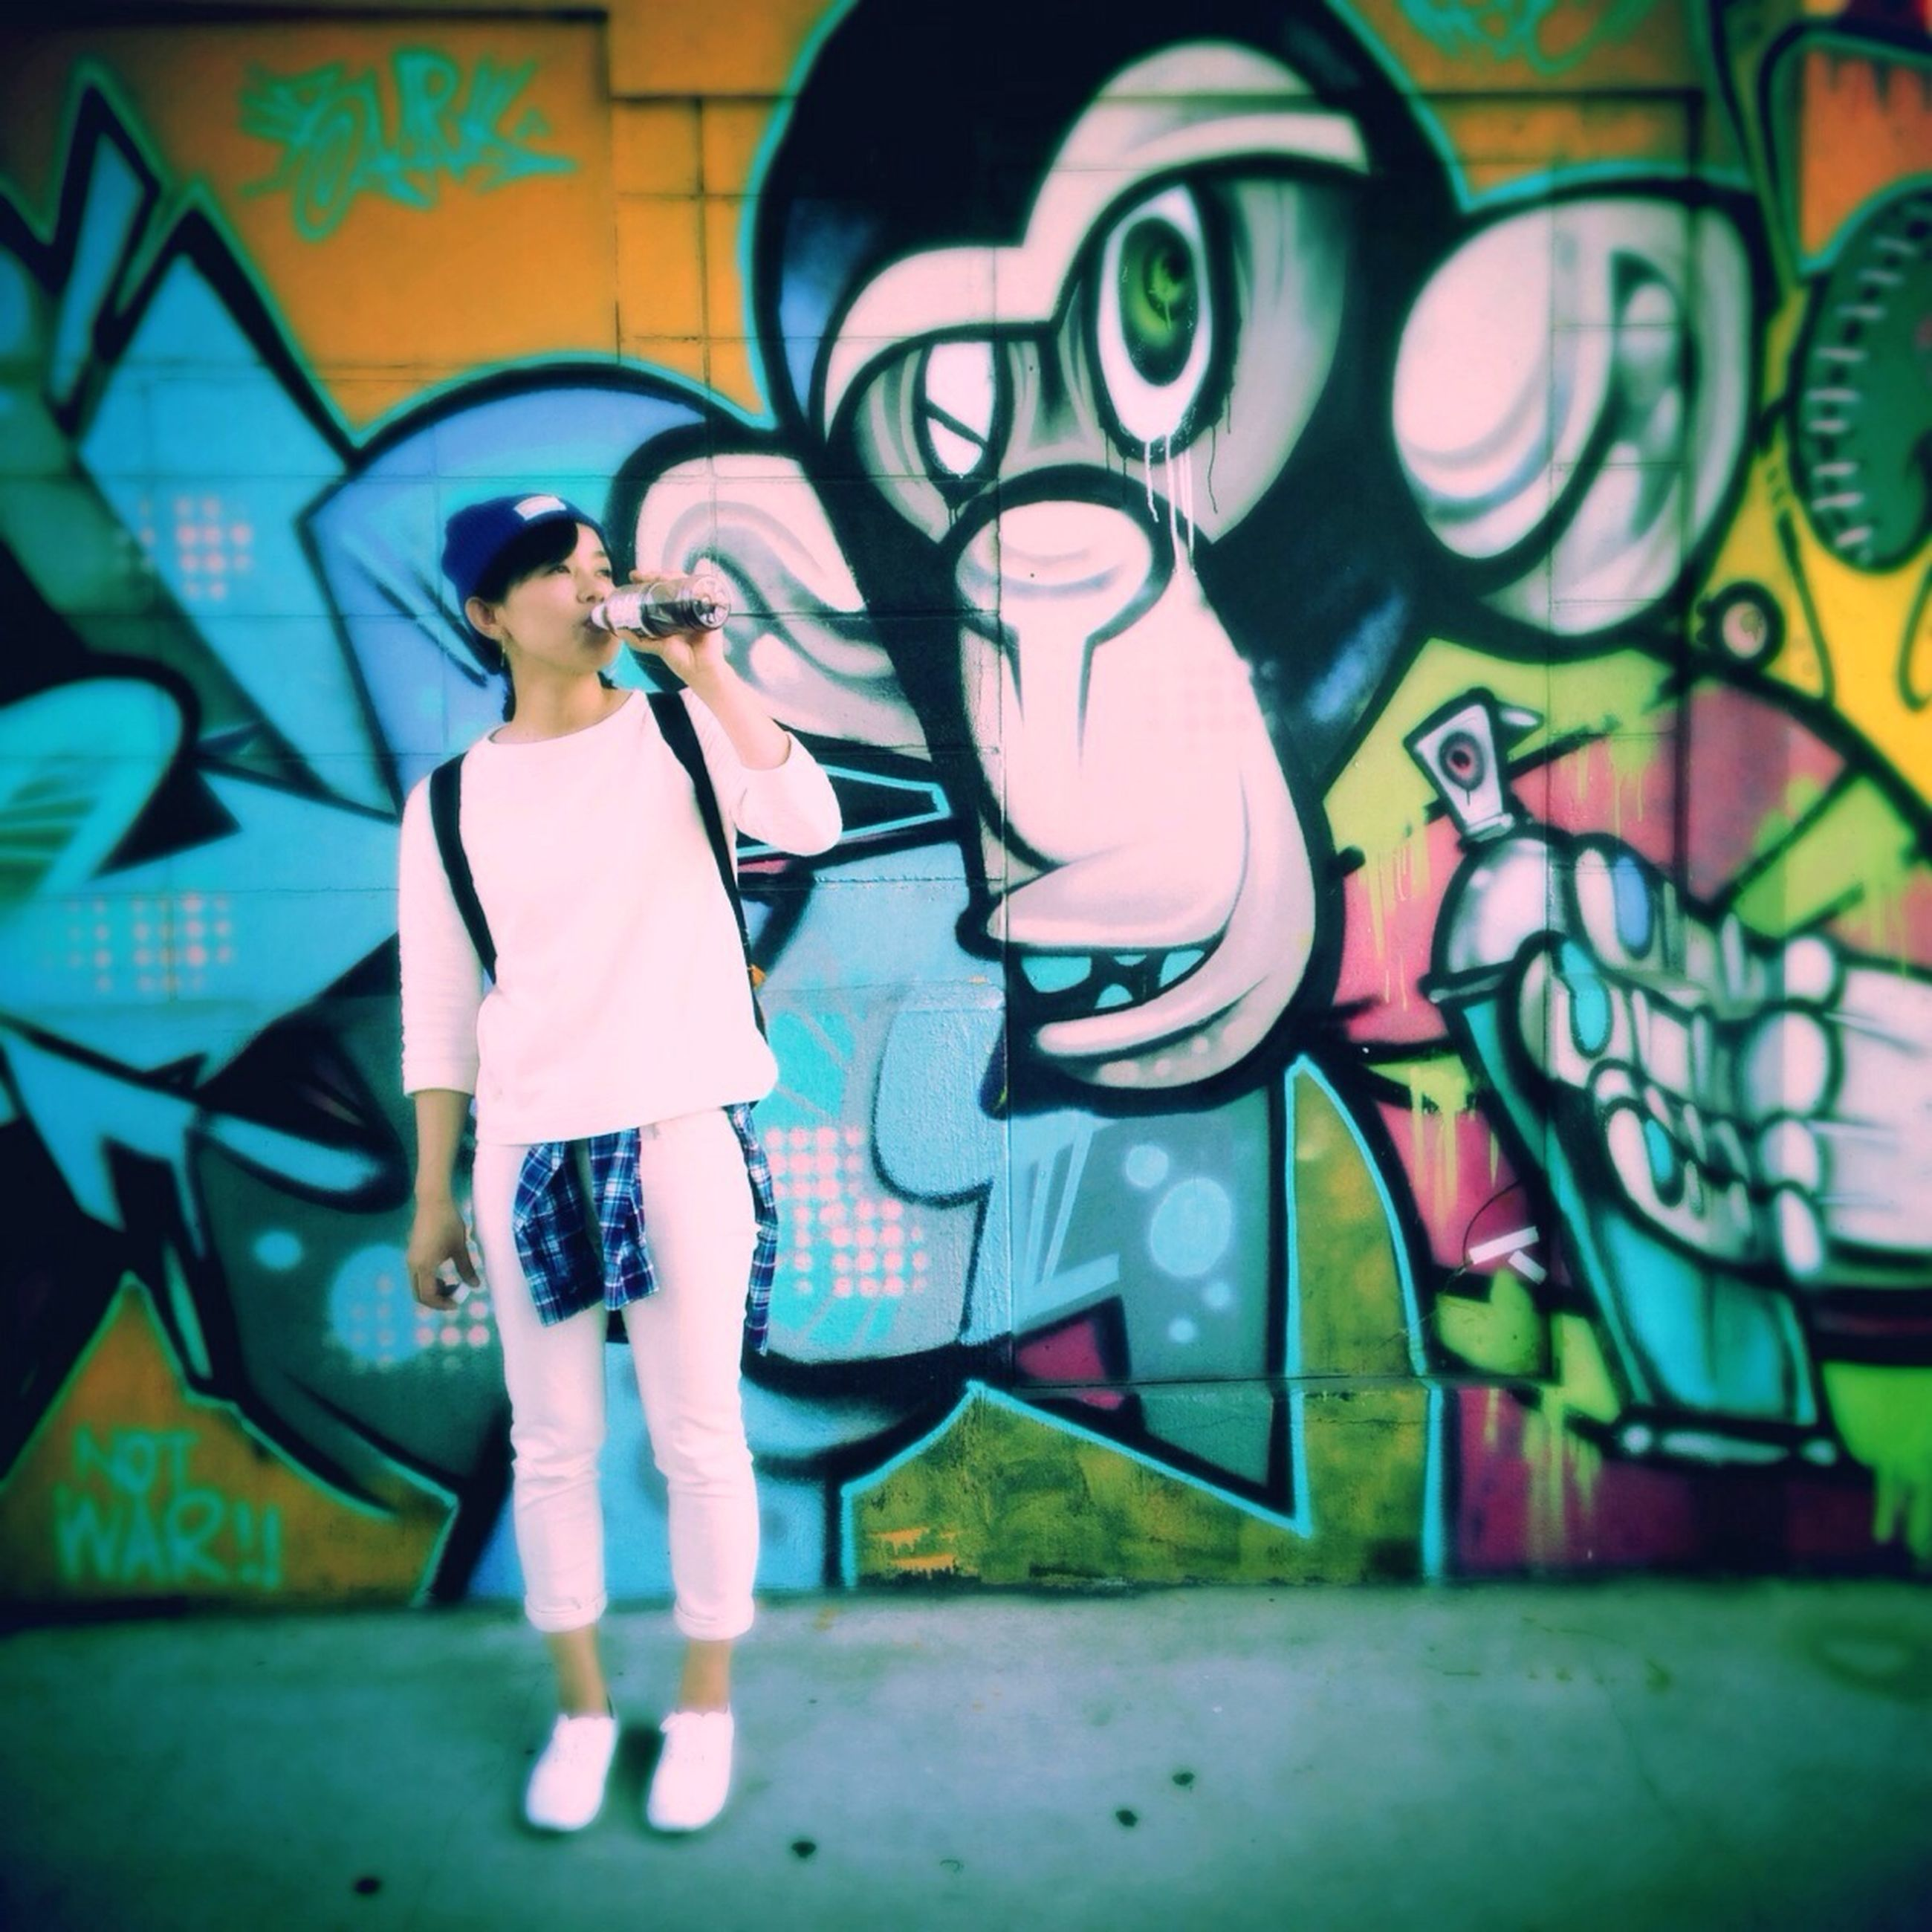 graffiti, art, creativity, lifestyles, art and craft, casual clothing, full length, wall - building feature, leisure activity, indoors, childhood, human representation, built structure, architecture, standing, person, multi colored, front view